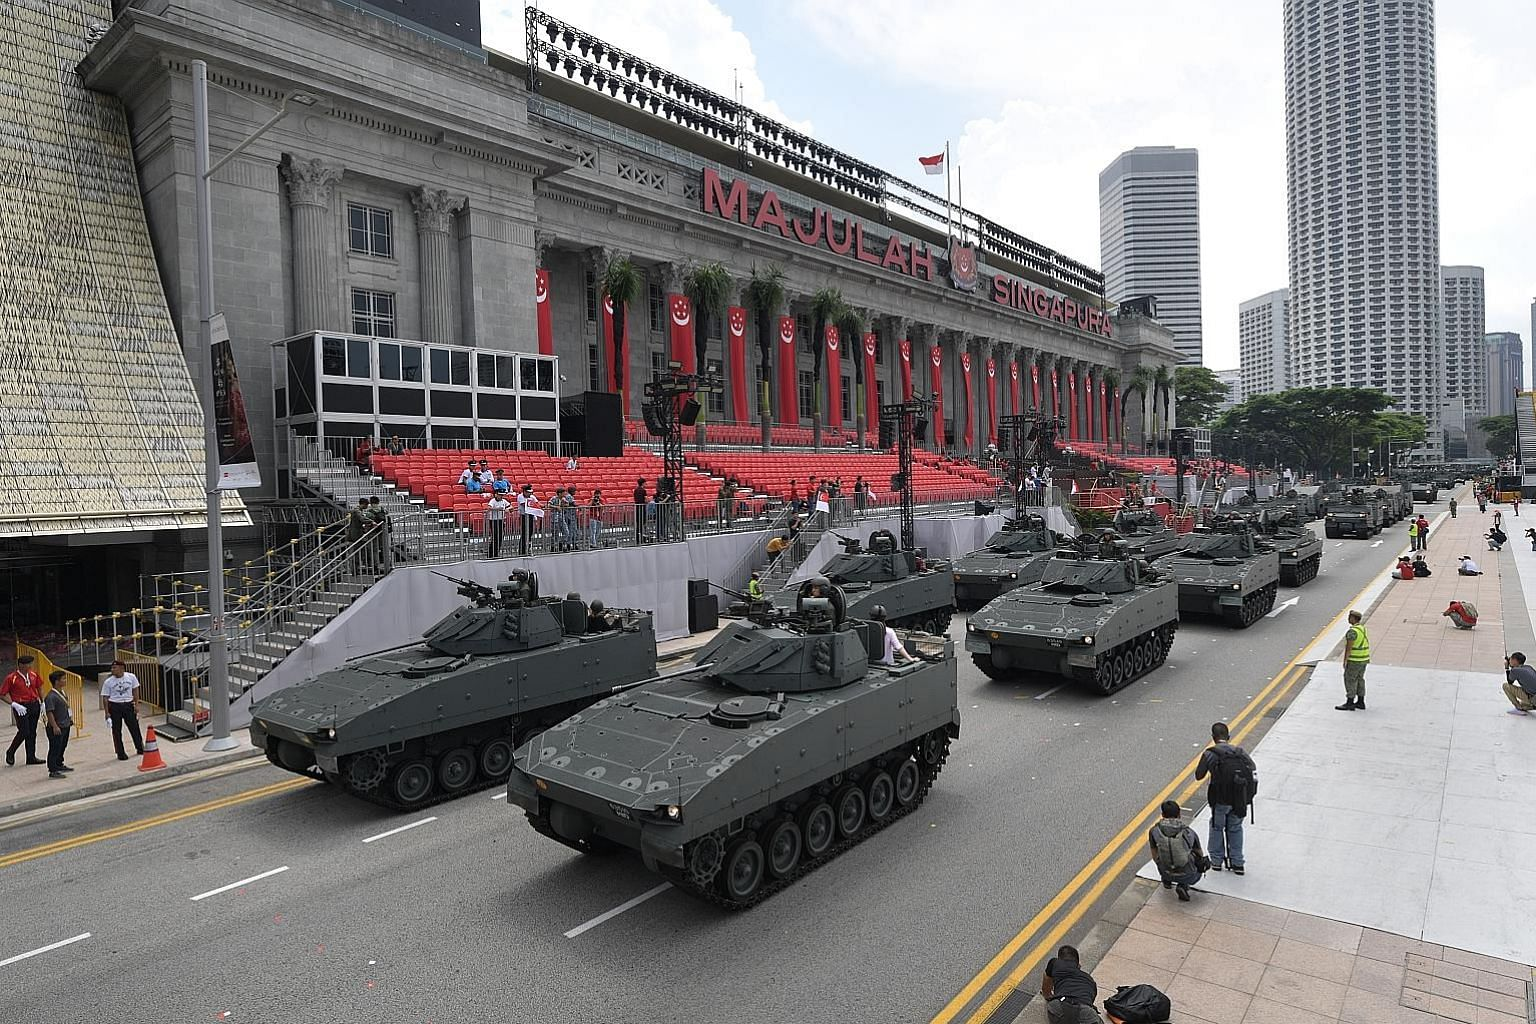 The return of the mobile column at this year's National Day Parade at the Padang is historically significant as the first mobile column rolled down the Padang 50 years ago, in 1969.